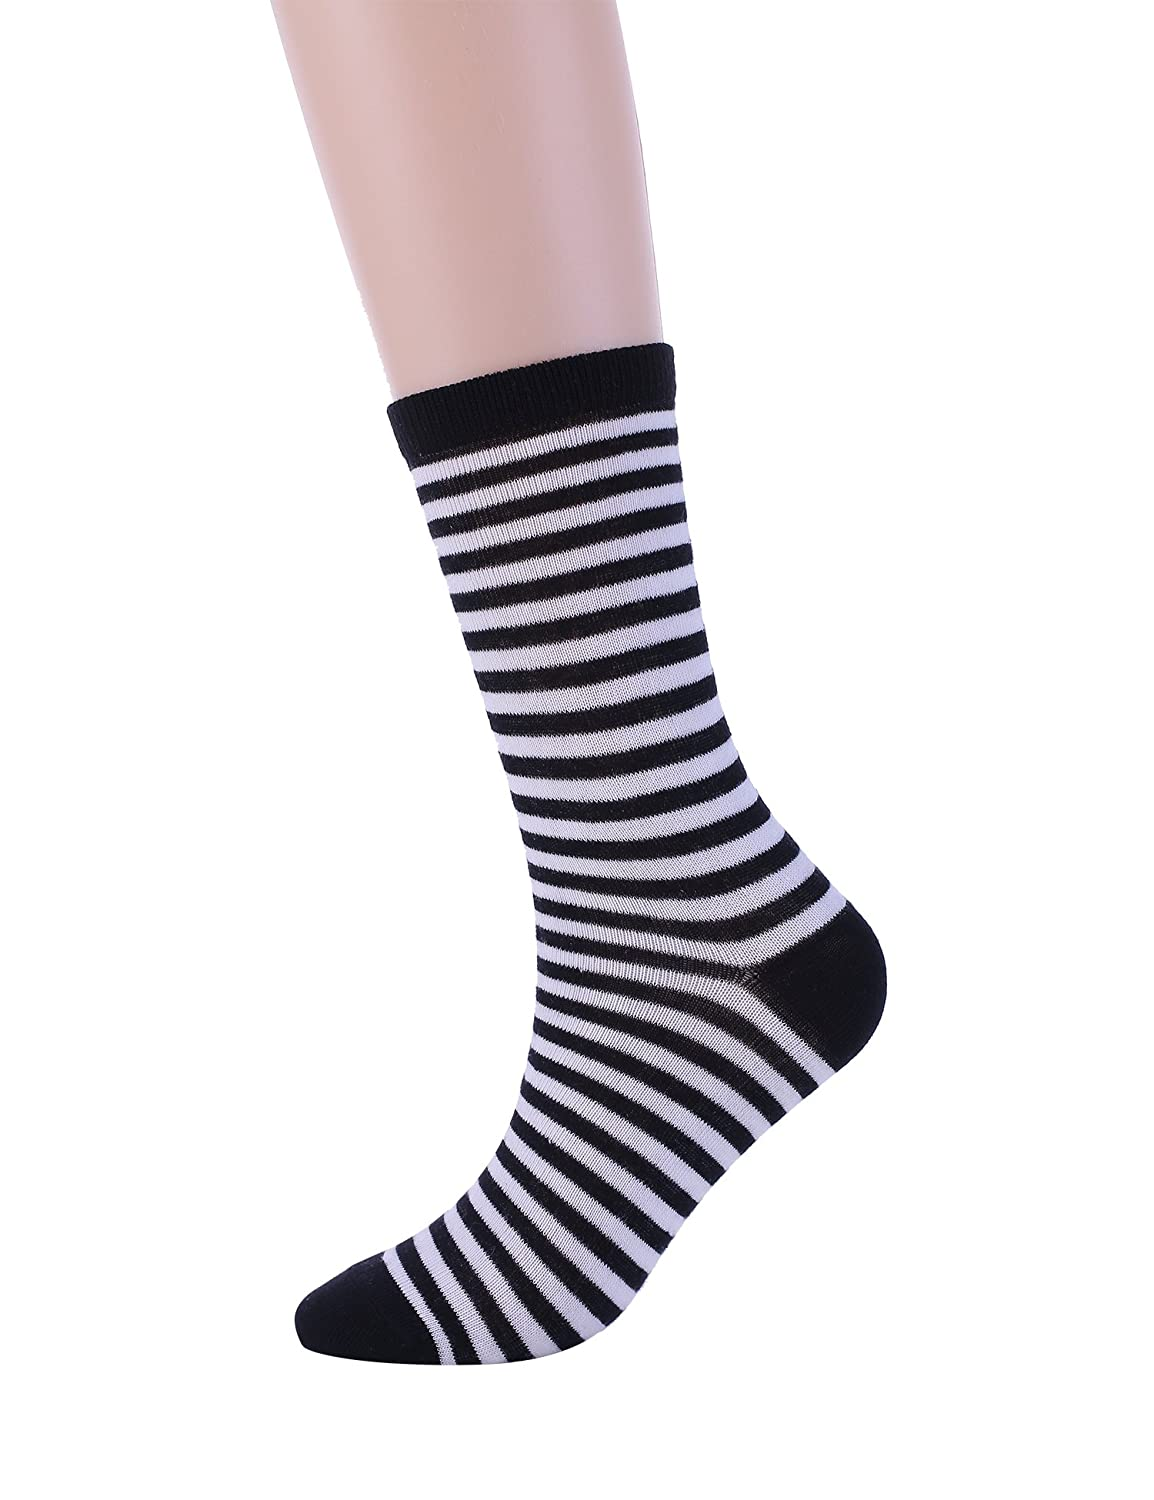 Men's Socks Generous Fashion New Funny Men Socks Casual Cute Cartoon Ankle Novelty Sox Soft Comfortable Male Short Sock